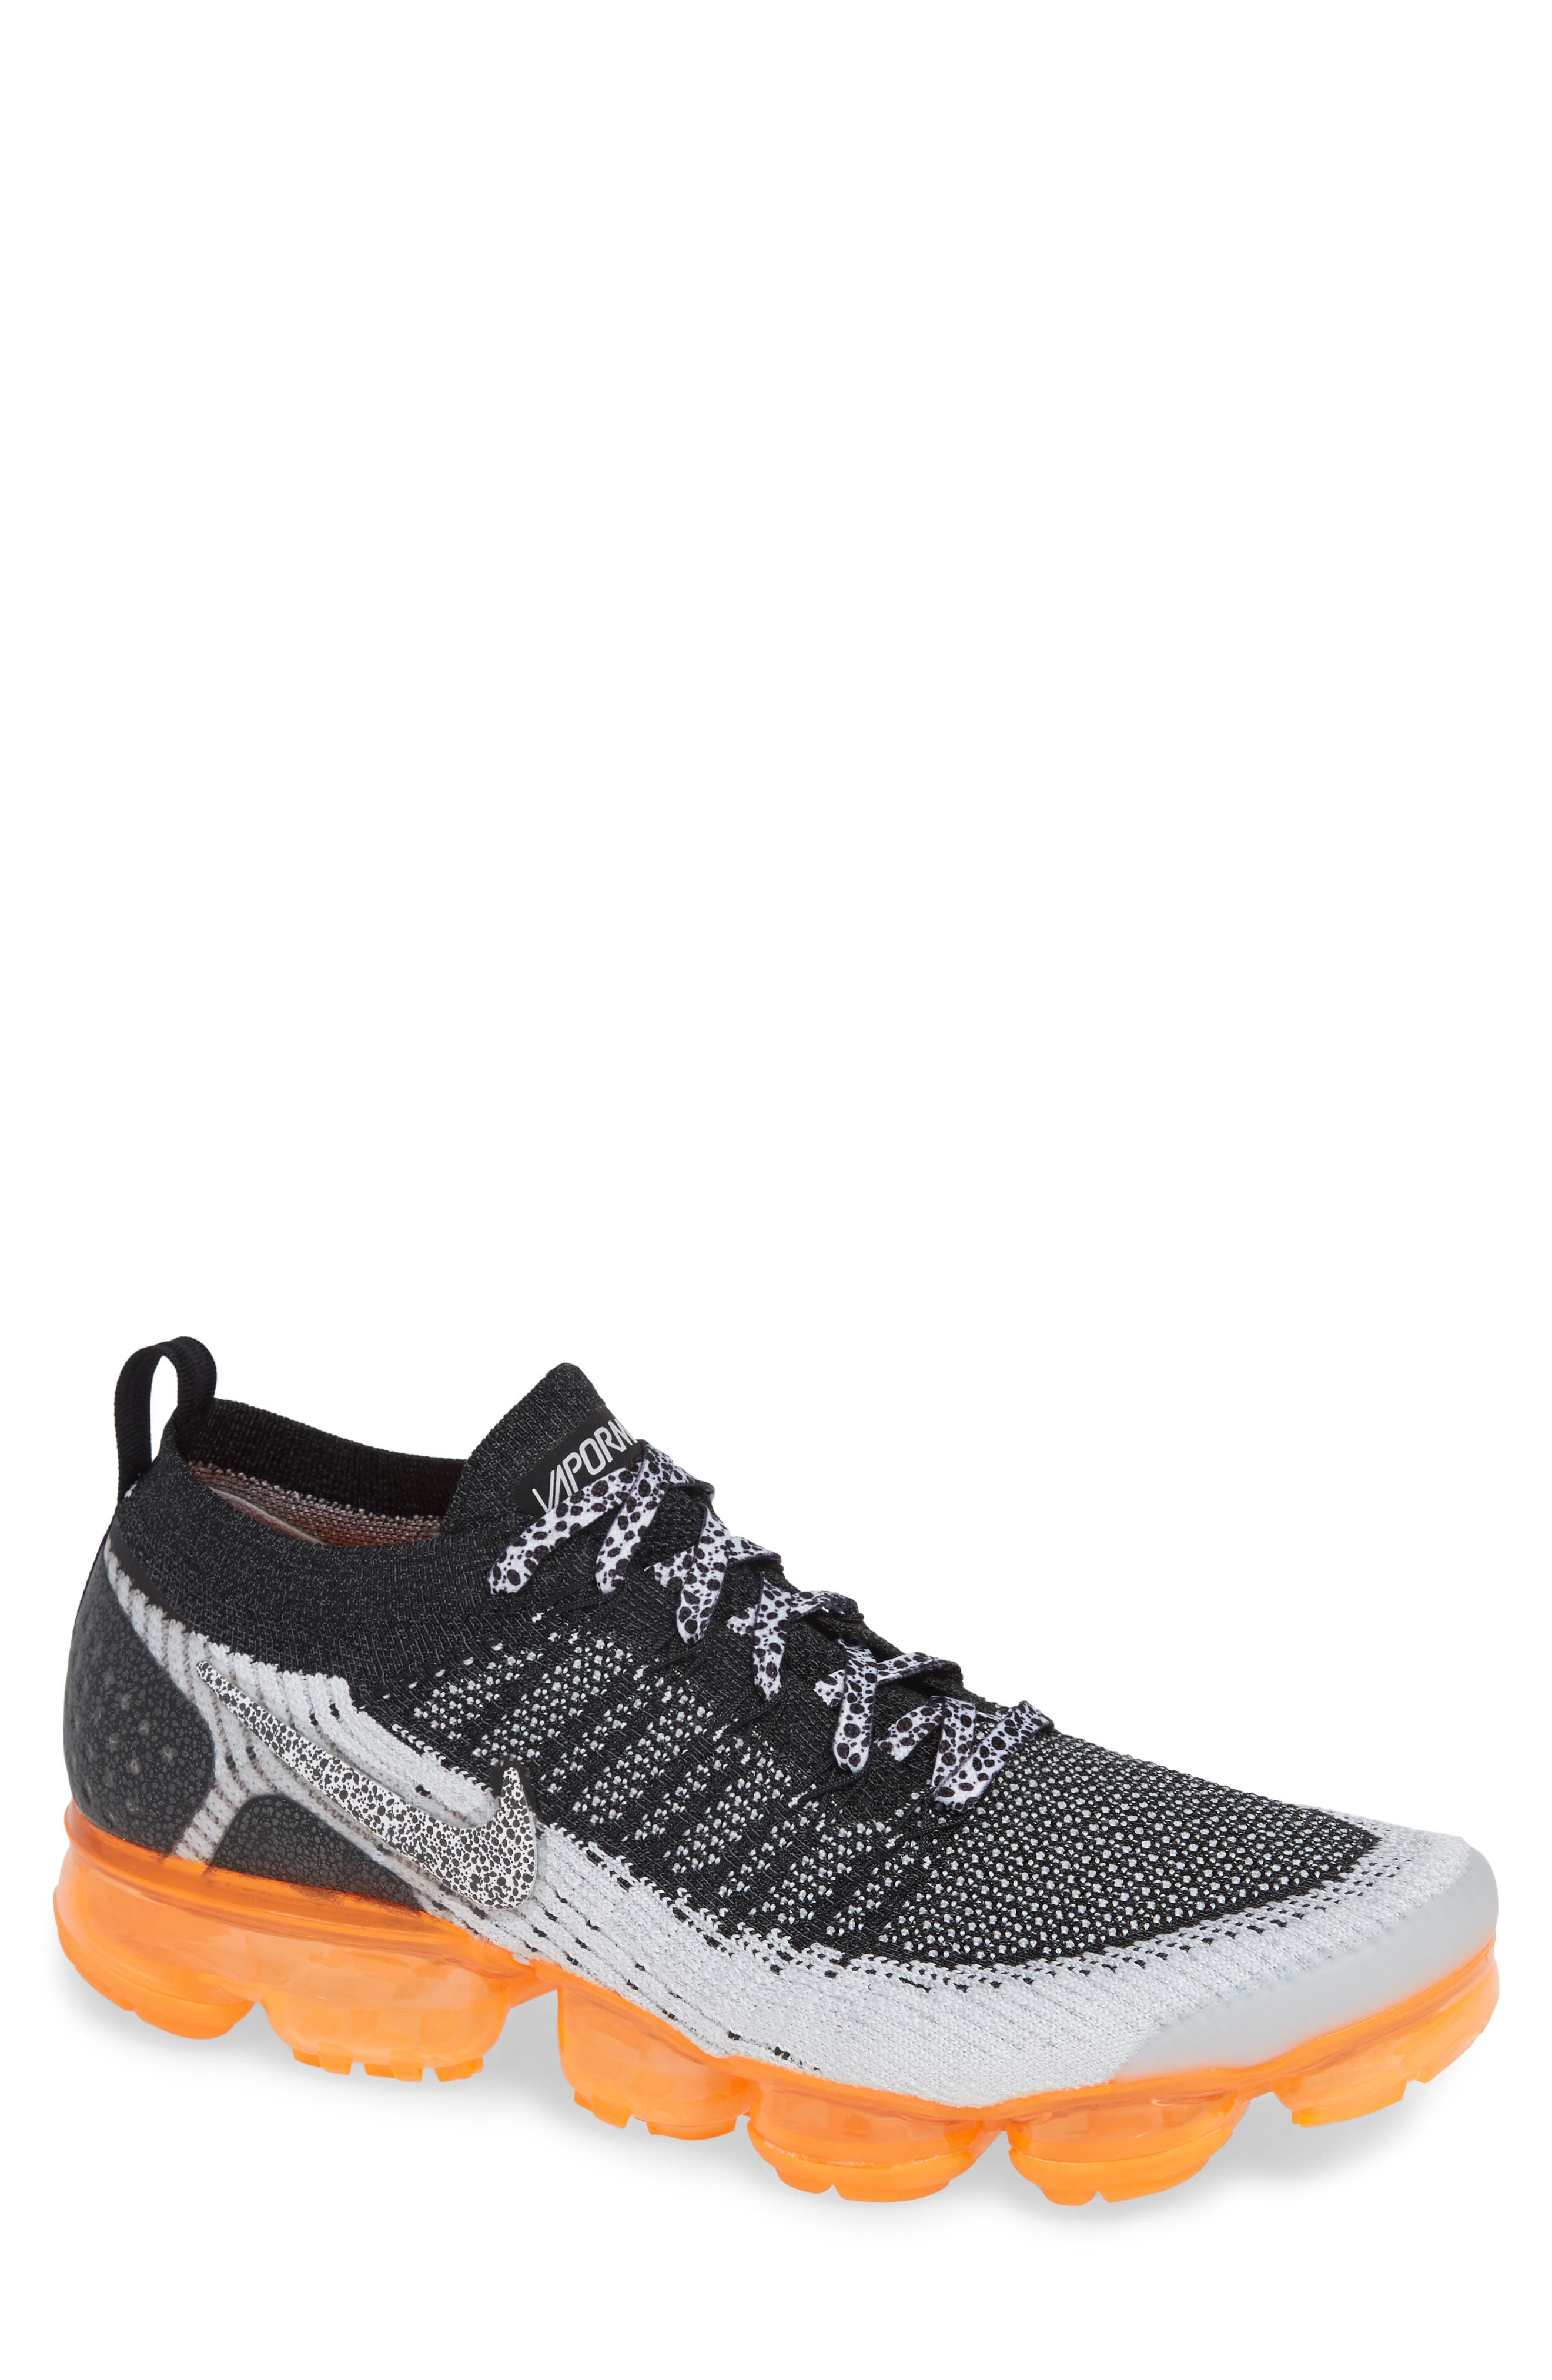 NIKE, Air VaporMax Flyknit 2 Running Shoe, Main thumbnail 1, color, WHITE/ BLACK/ TOTAL ORANGE